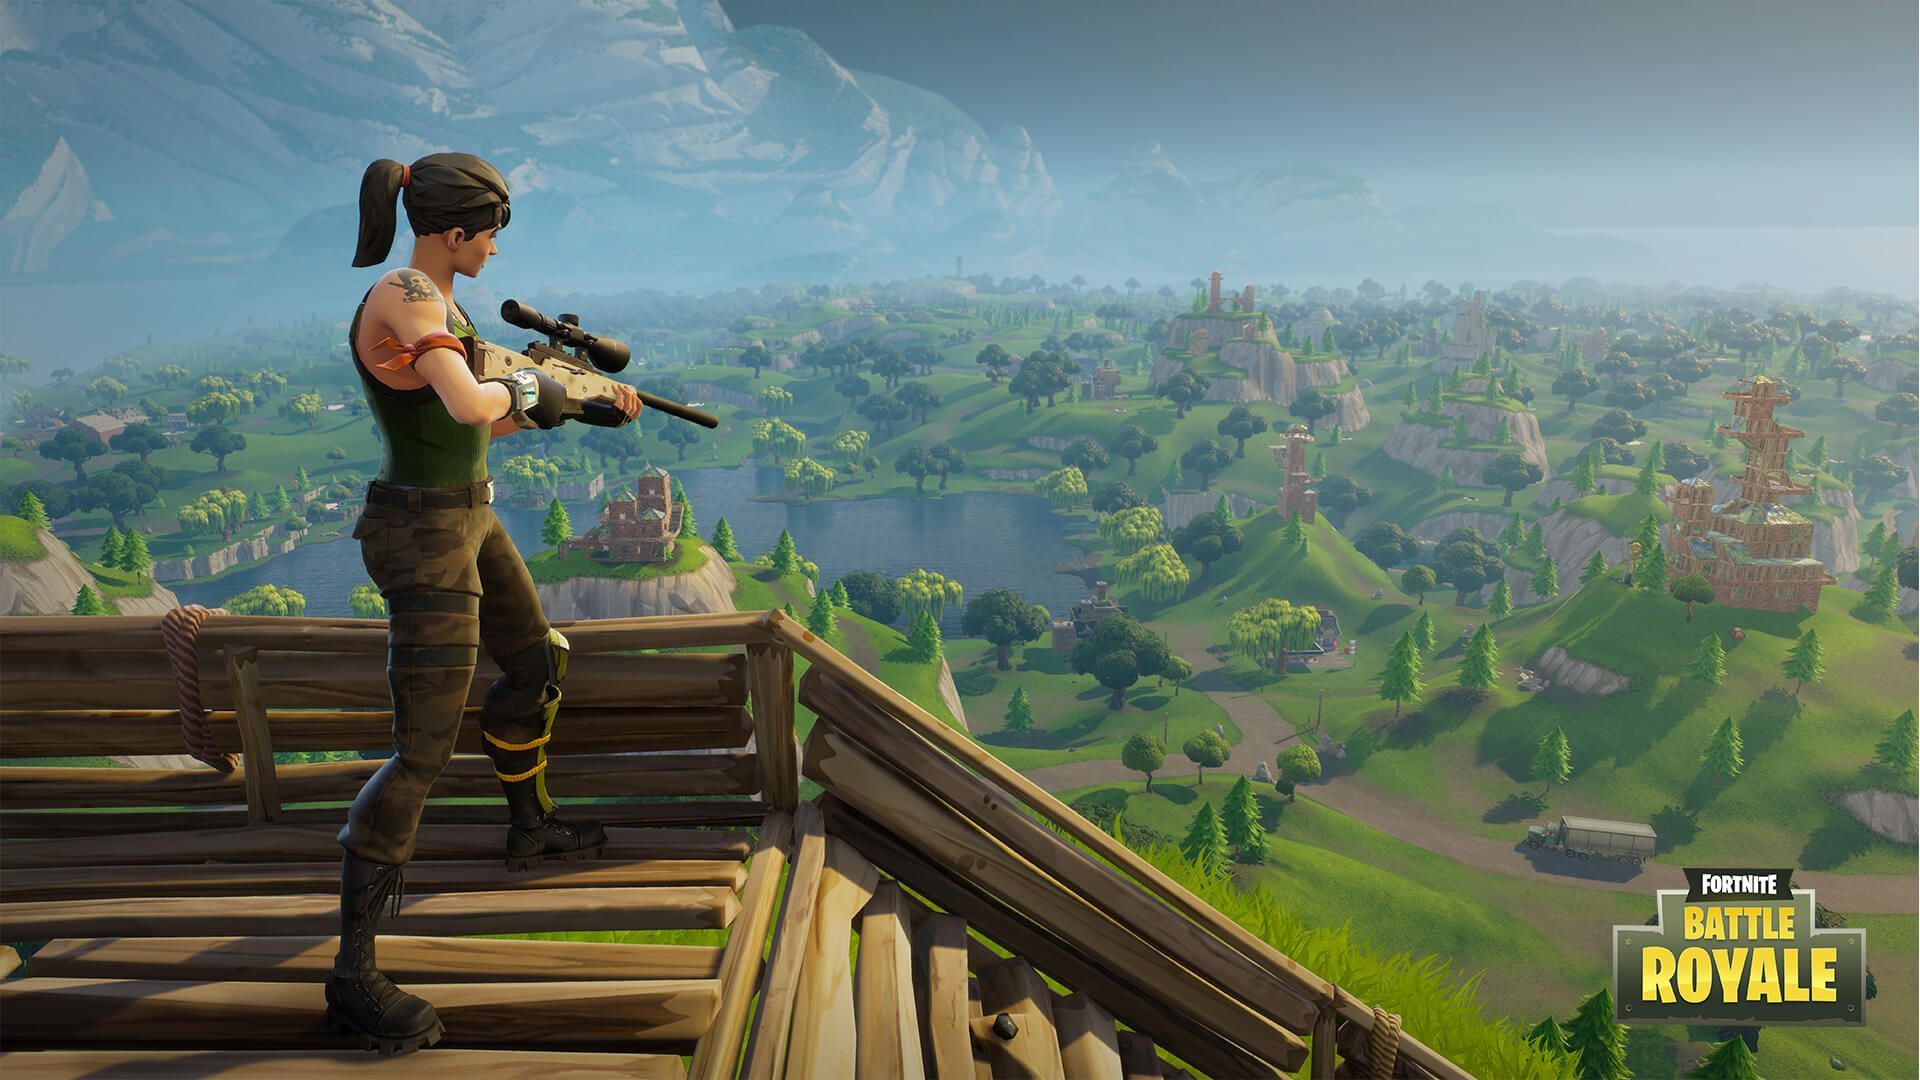 Fortnite Future Updates Detailed, Progression to Include Cosmetics